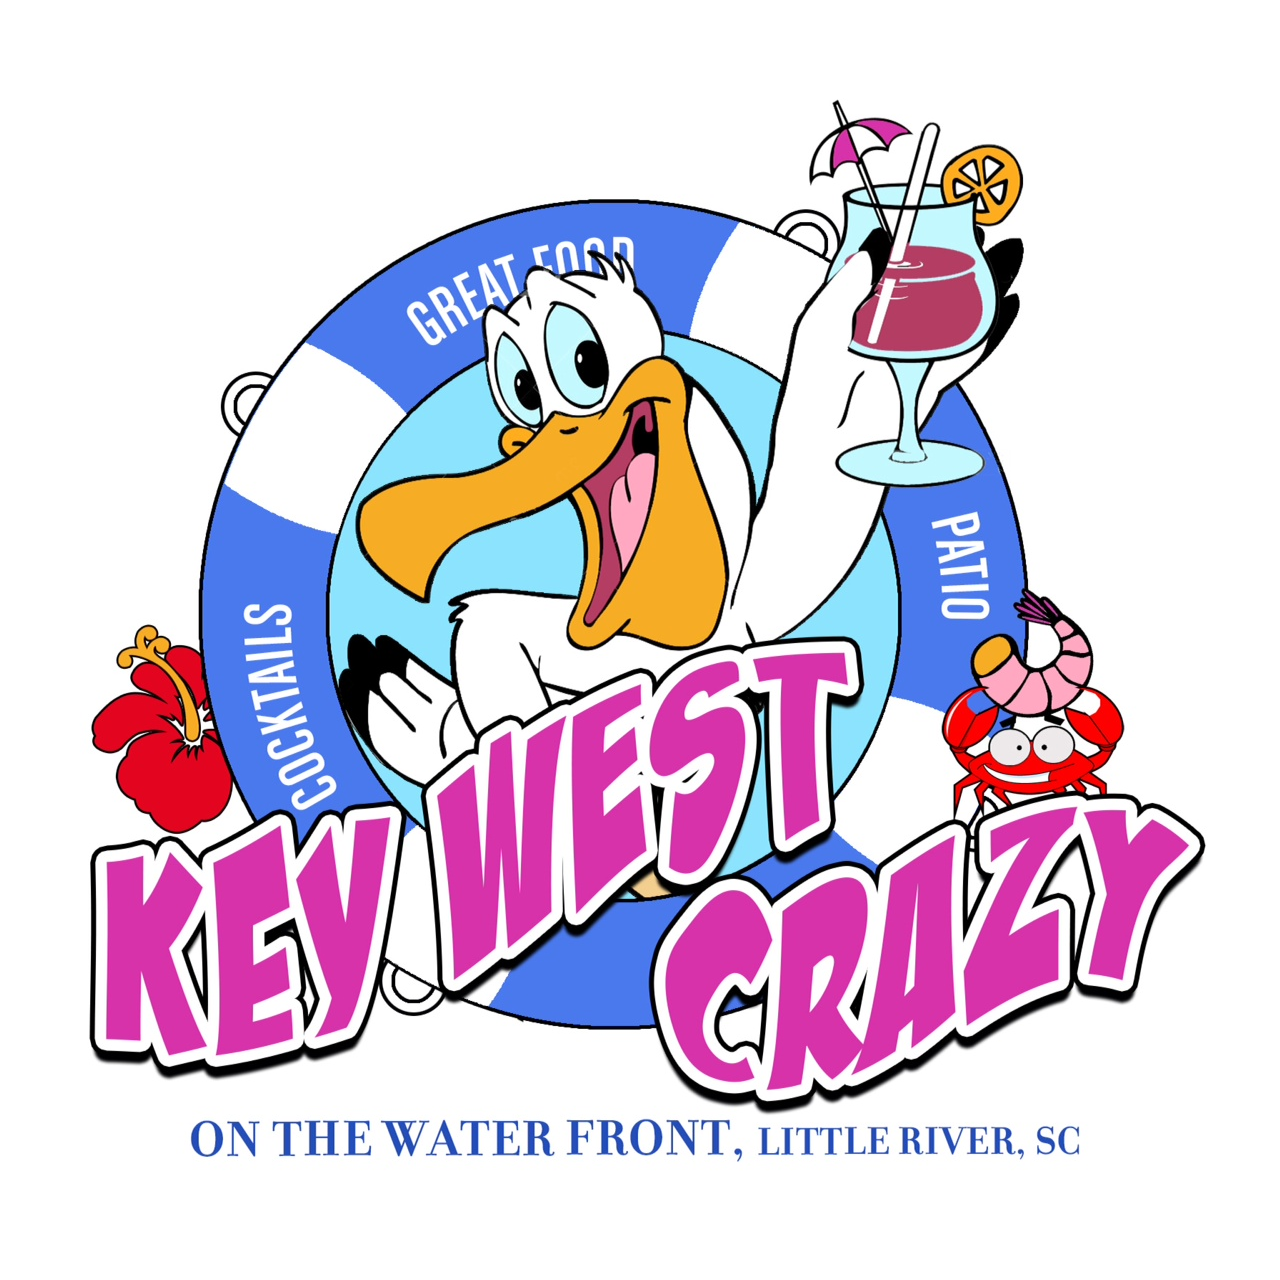 Key West Crazy Waterfront Restaurant & Bar